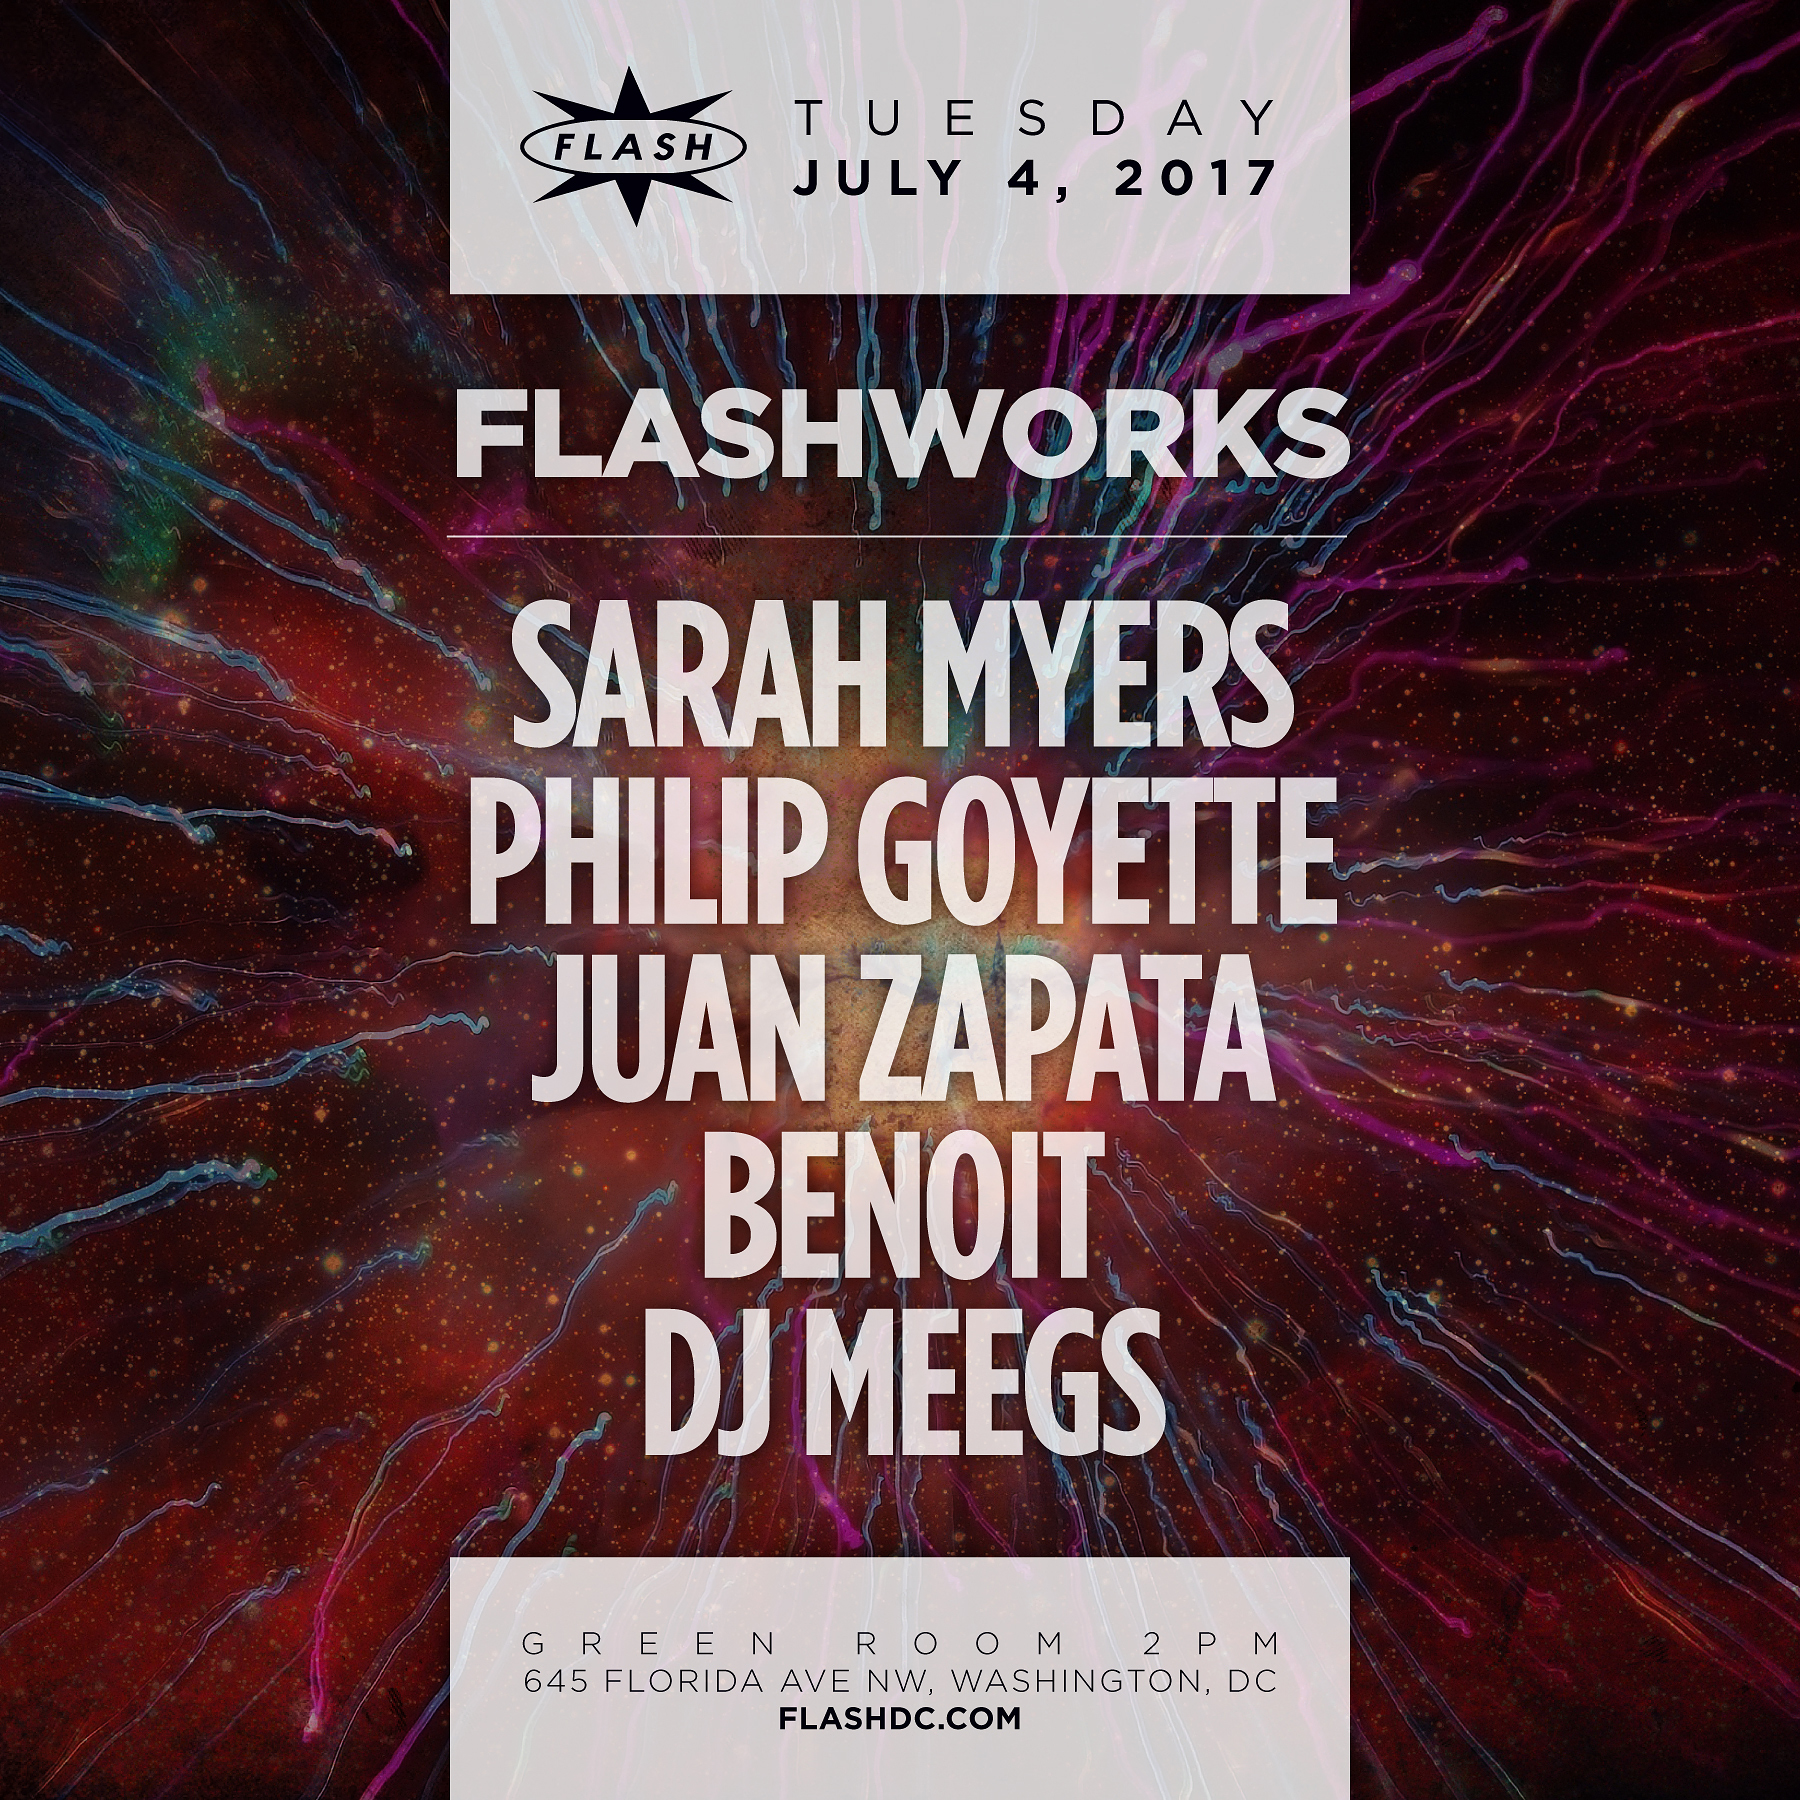 Flashworks: Sarah Myers - Philip Goyette - Team Zapata - Benoit - DJ Meegs event thumbnail